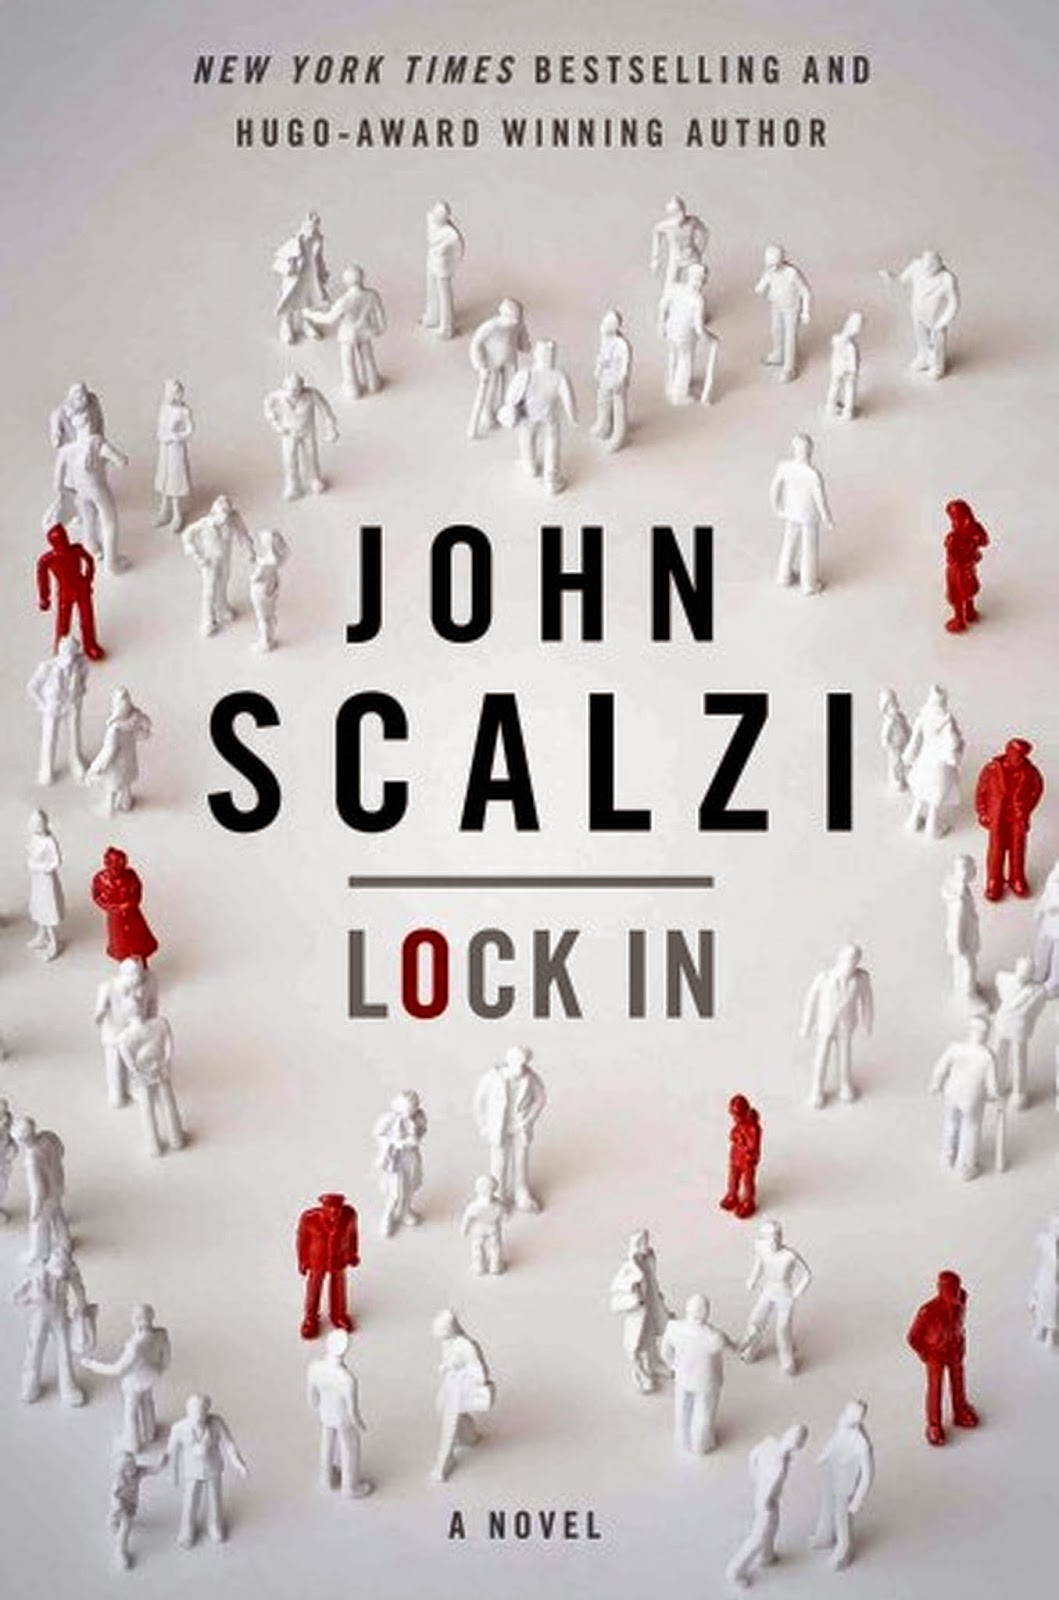 https://www.goodreads.com/book/show/21418013-lock-in?ac=1